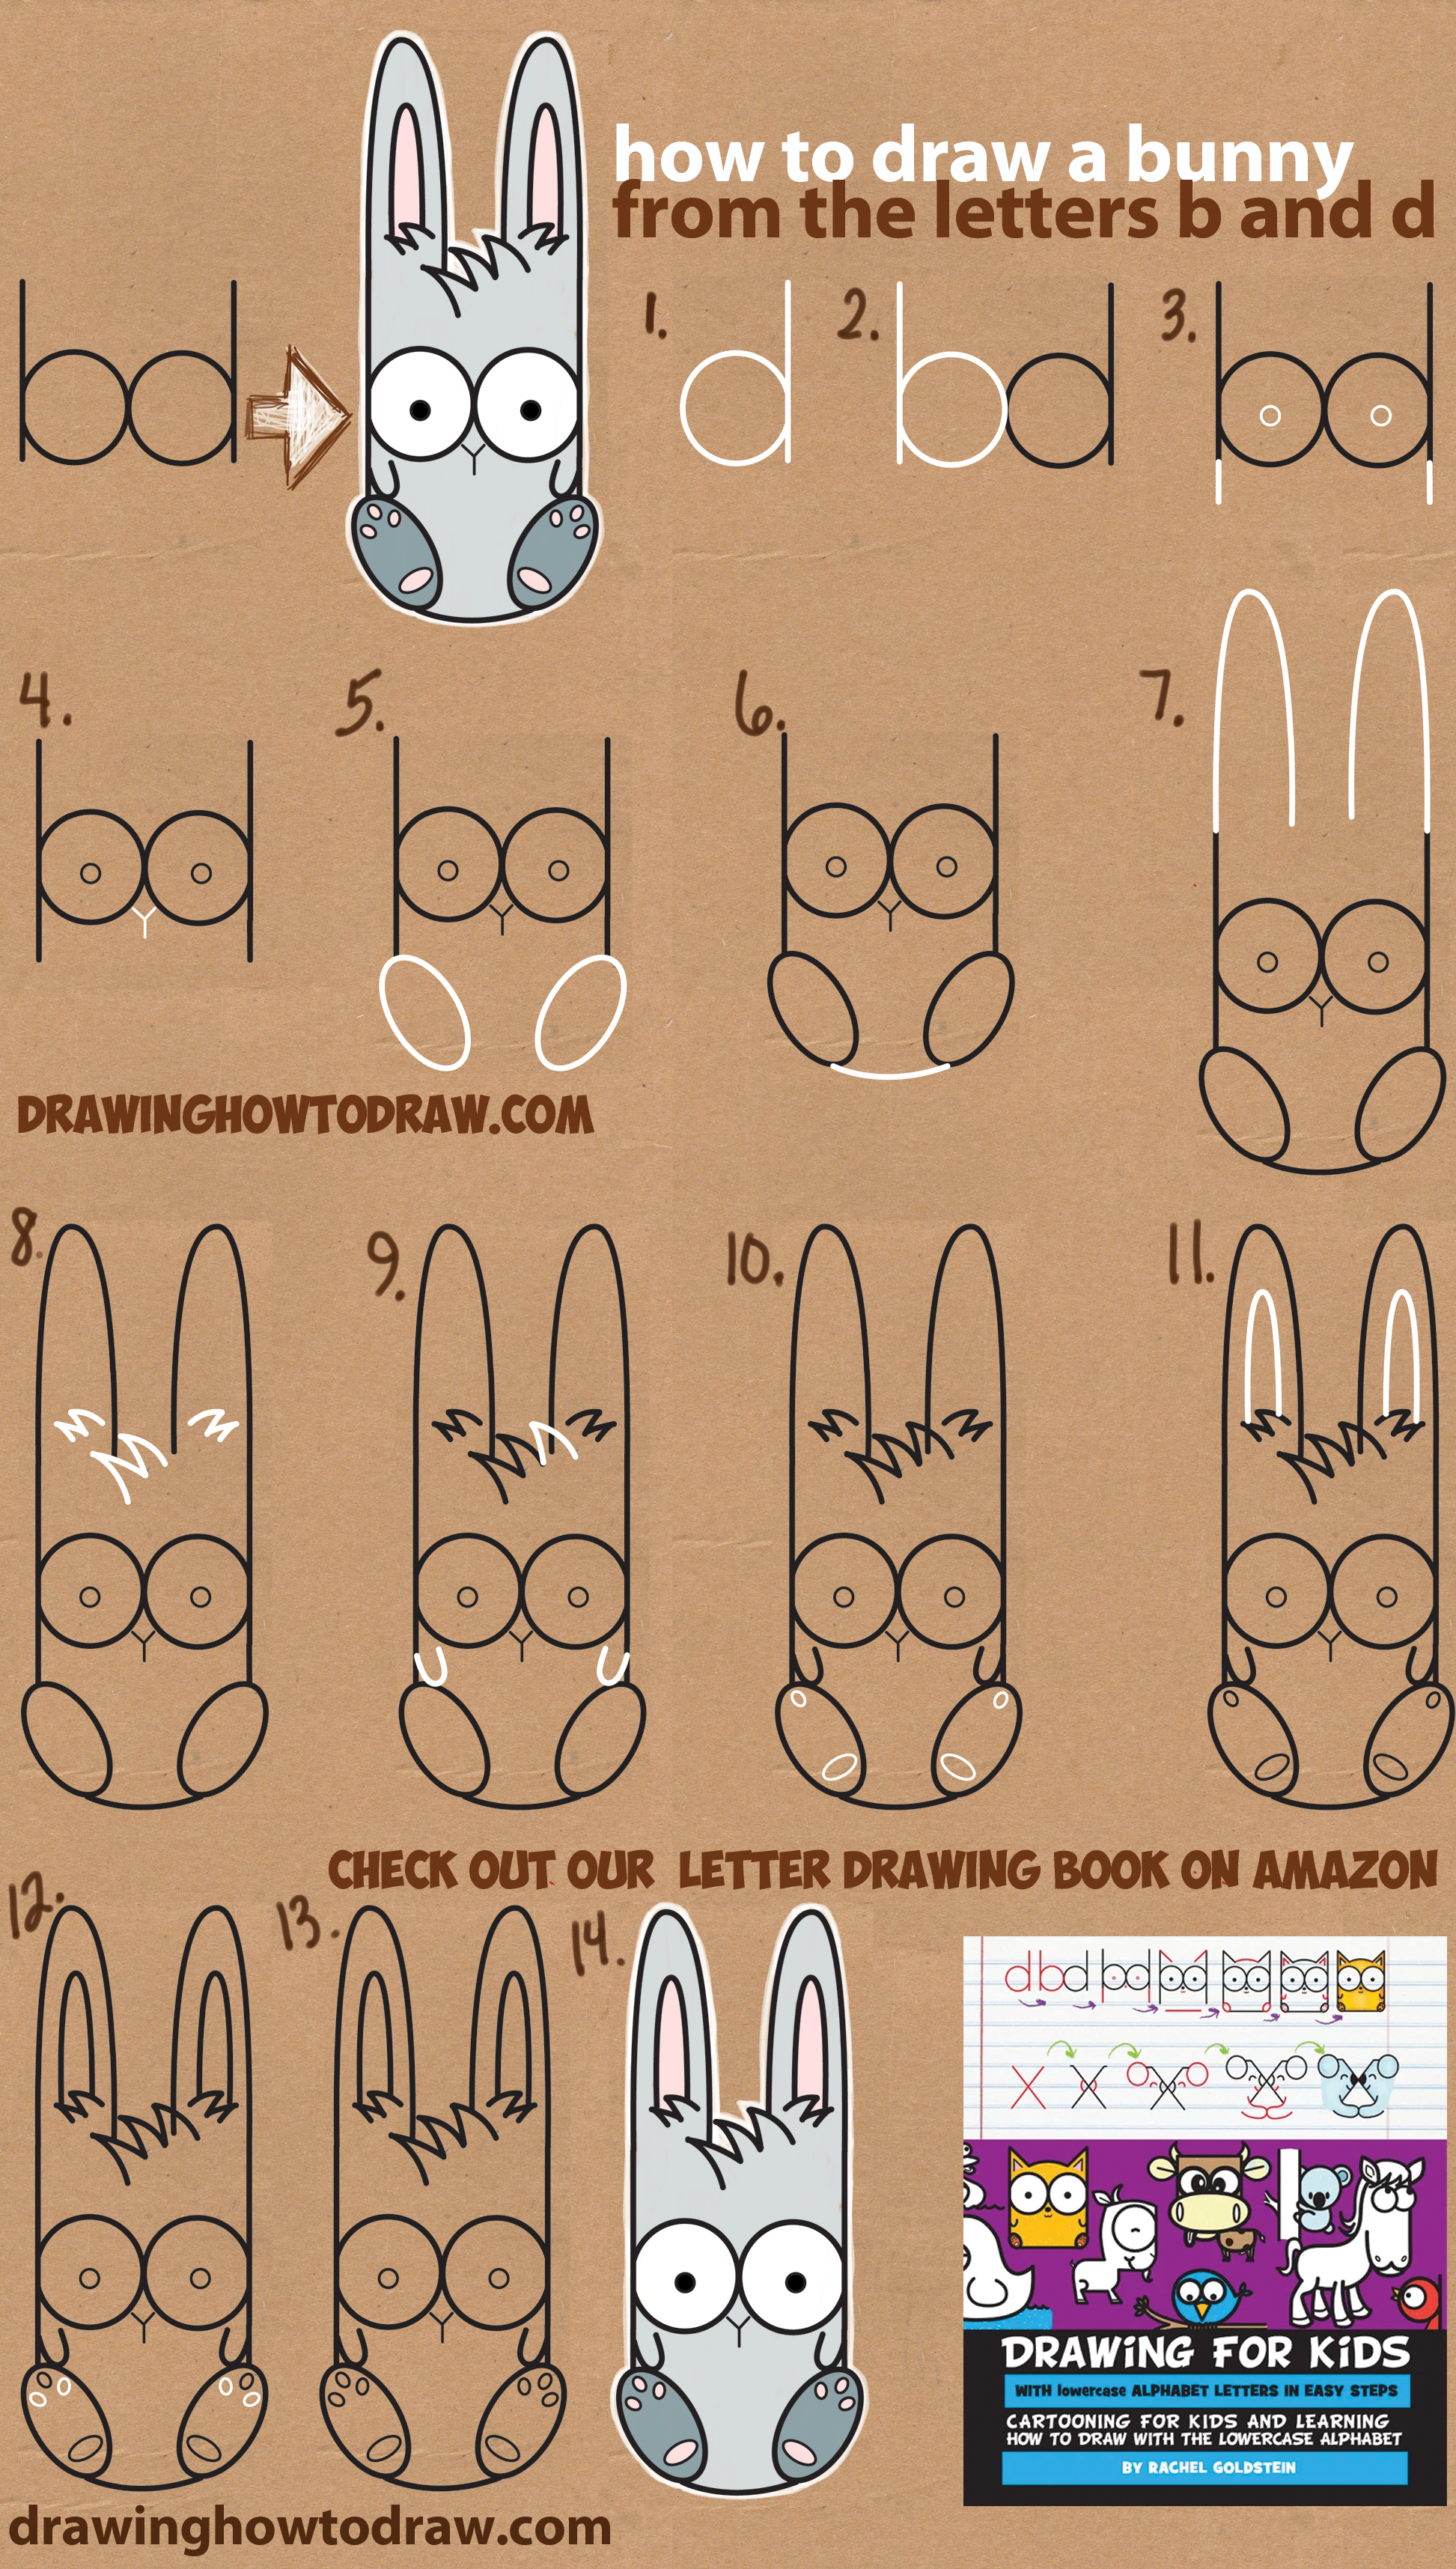 How to Draw A Cute Cartoon Bunny Using Lowercase Letters b and d - Easy Step by Step Drawing Tutorial for Kids (Great for Easter)